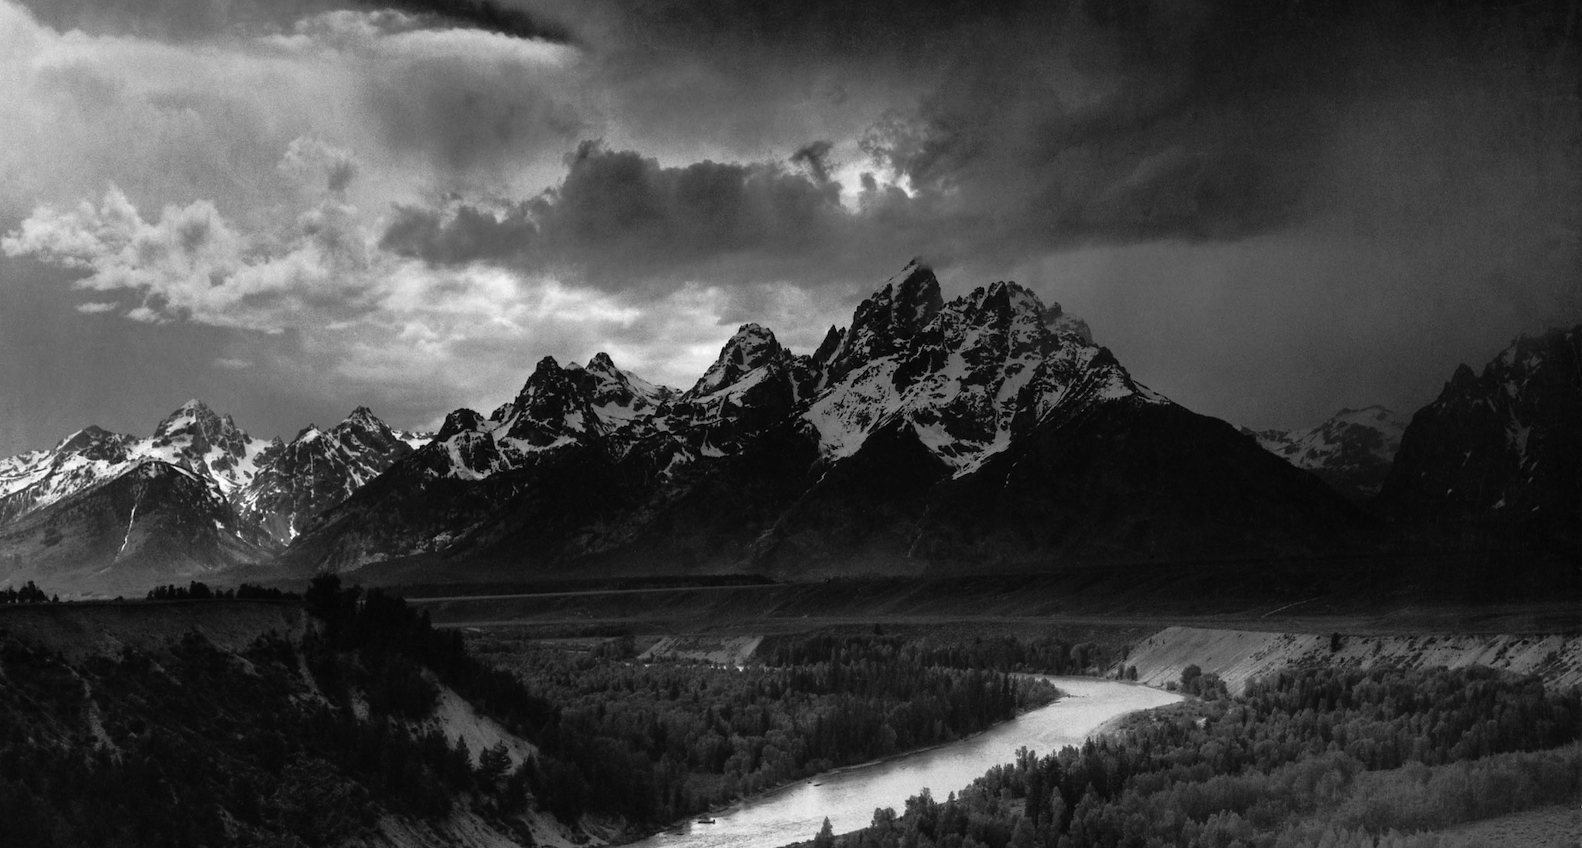 ansel-adams-act, photography-laws, news, steve-stockman